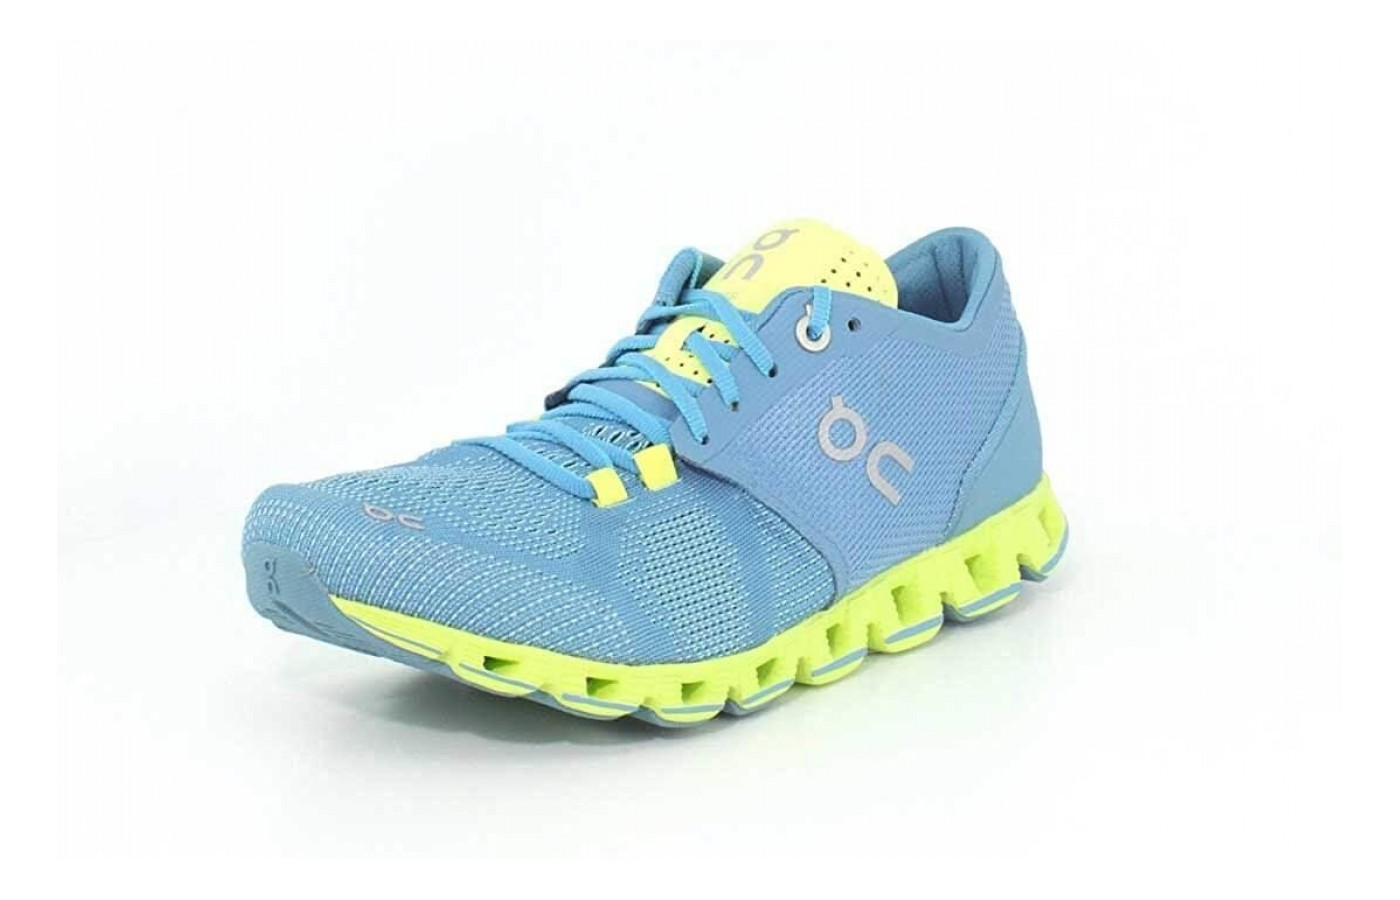 The On Cloud X is designed for all sorts of workouts, including running